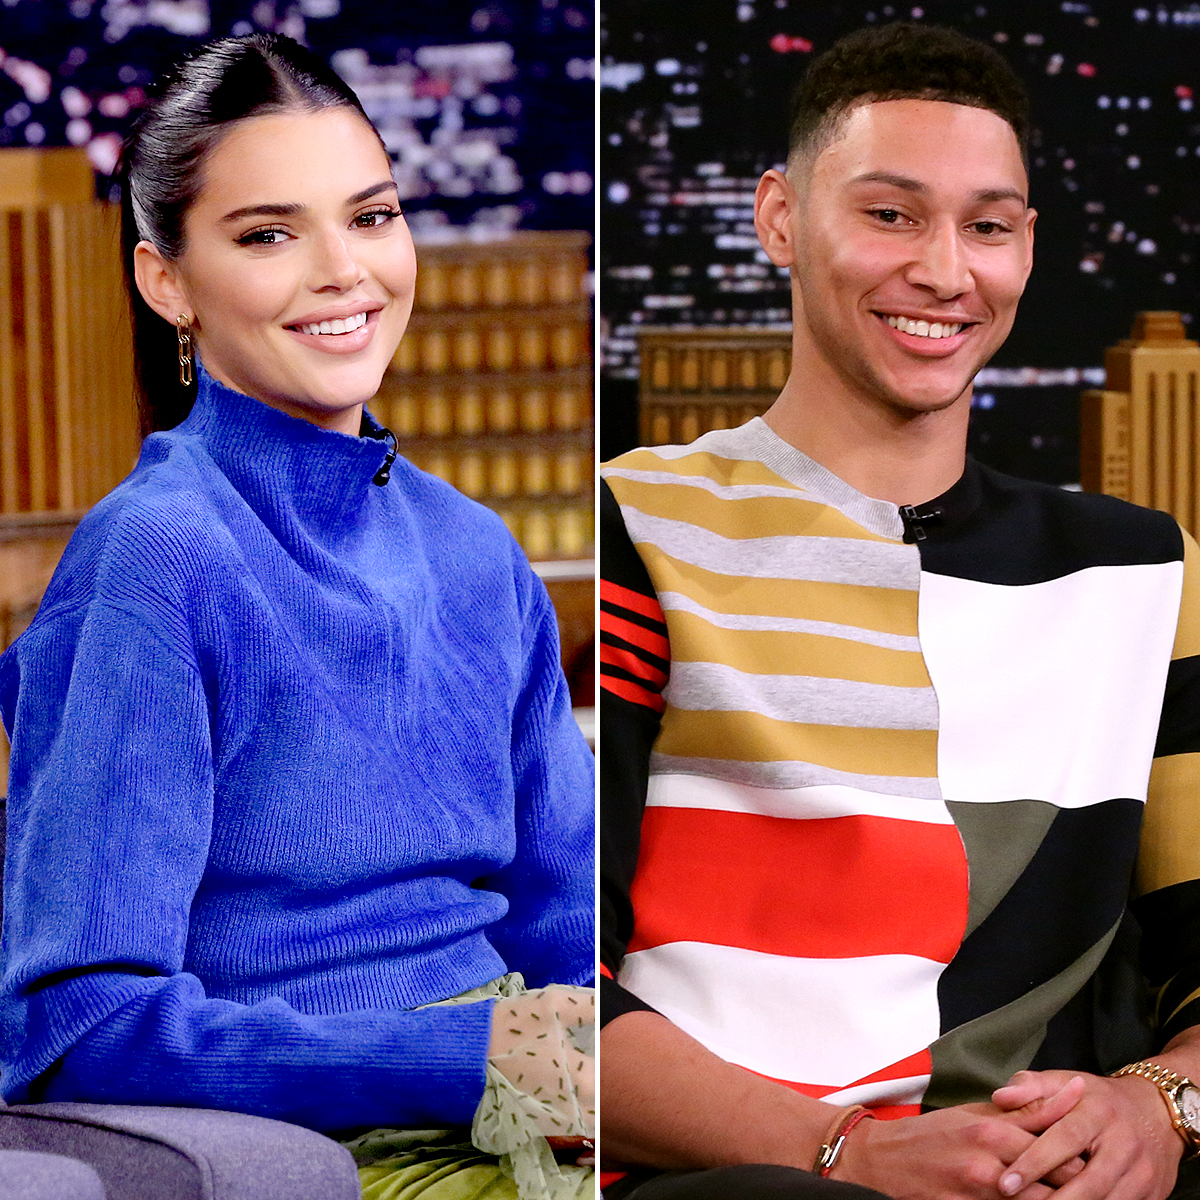 Ben-Simmons-and-Kendall-Jenner-Get-Flirty-on-Instagram - Kendall Jenner and Ben Simmons